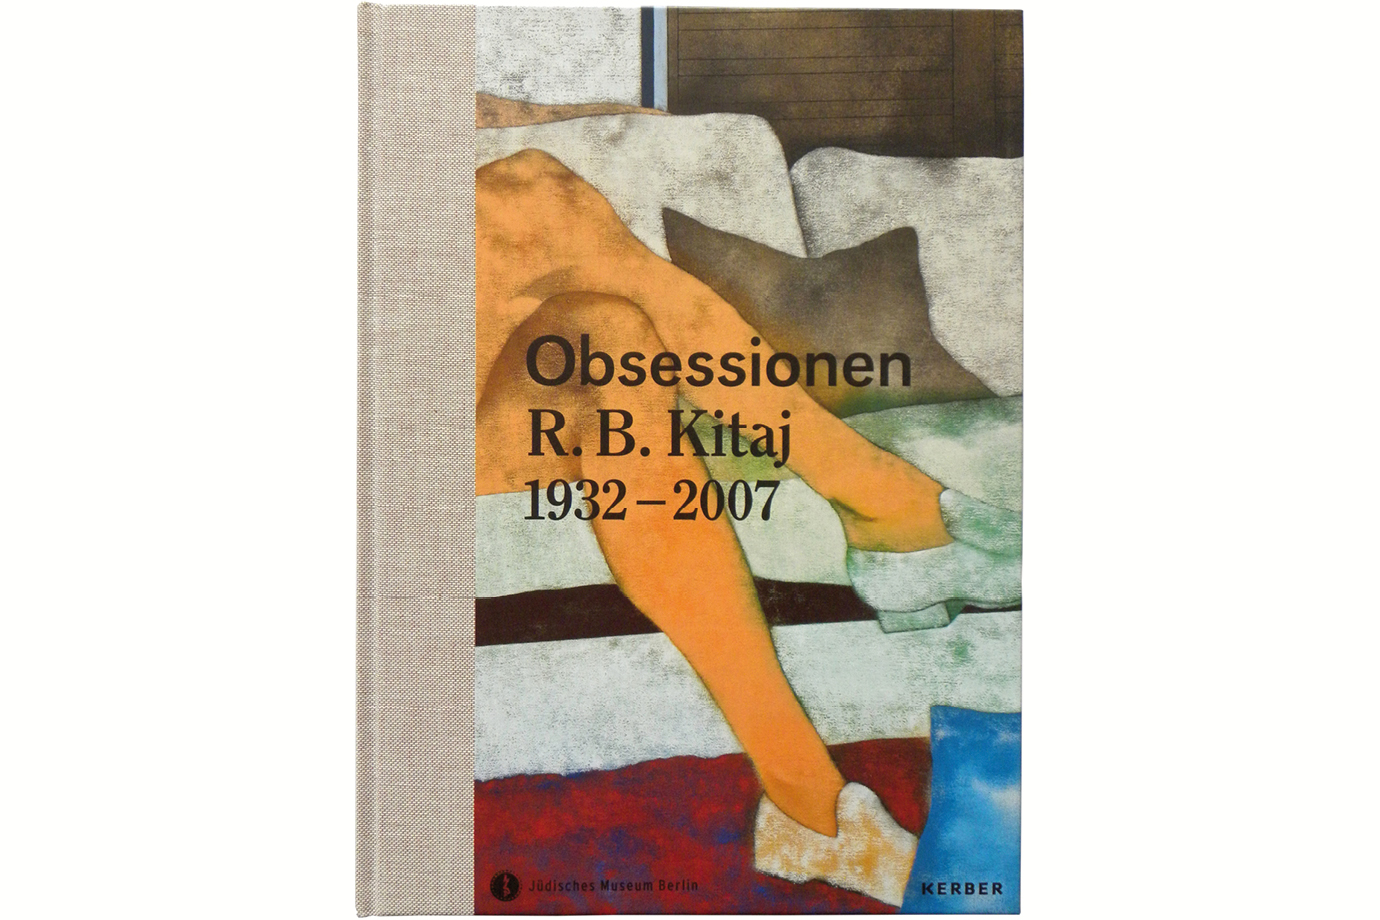 http://e-o-t.de/wordpress/wp-content/uploads/2017/07/eot-2012-Kitaj-Book-1.jpg